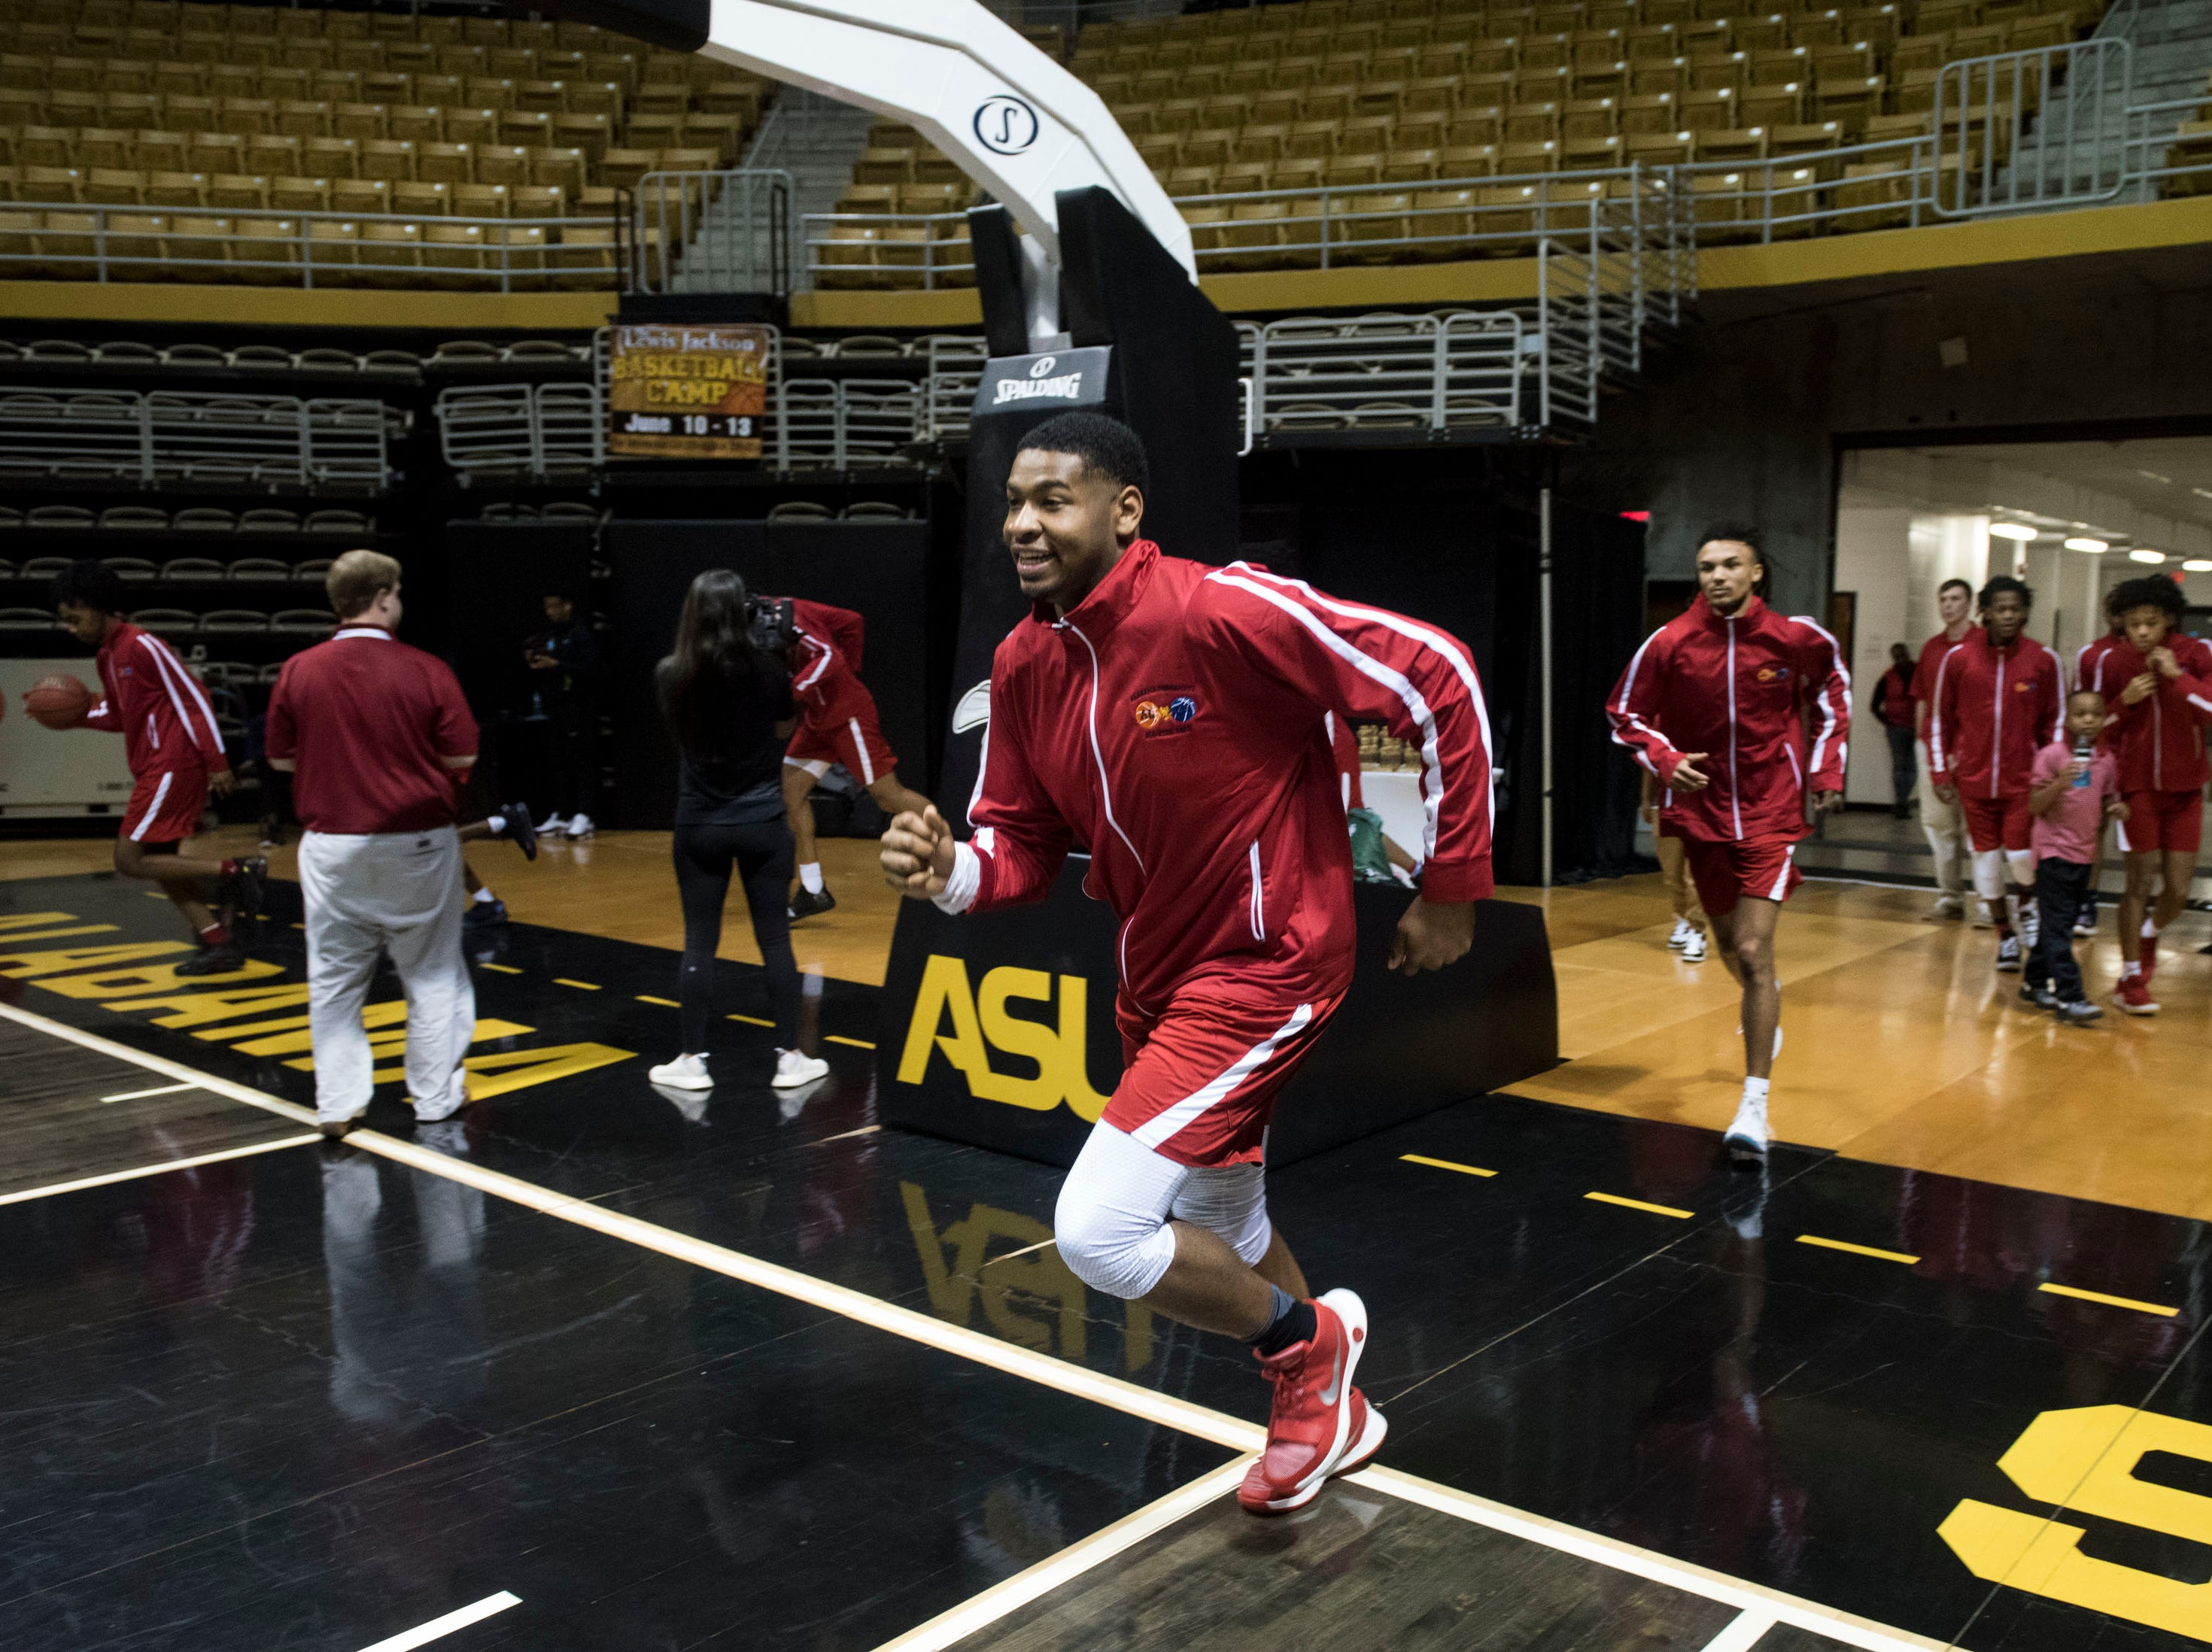 Alabama's Demond Robinson runs onto the court with his team during the Alabama-Mississippi All-Star game at the Dunn-Oliver Acadome in Montgomery, Ala., on Friday, March 15, 2019. Alabama All-stars defeated the Mississippi All-stars 107-90.